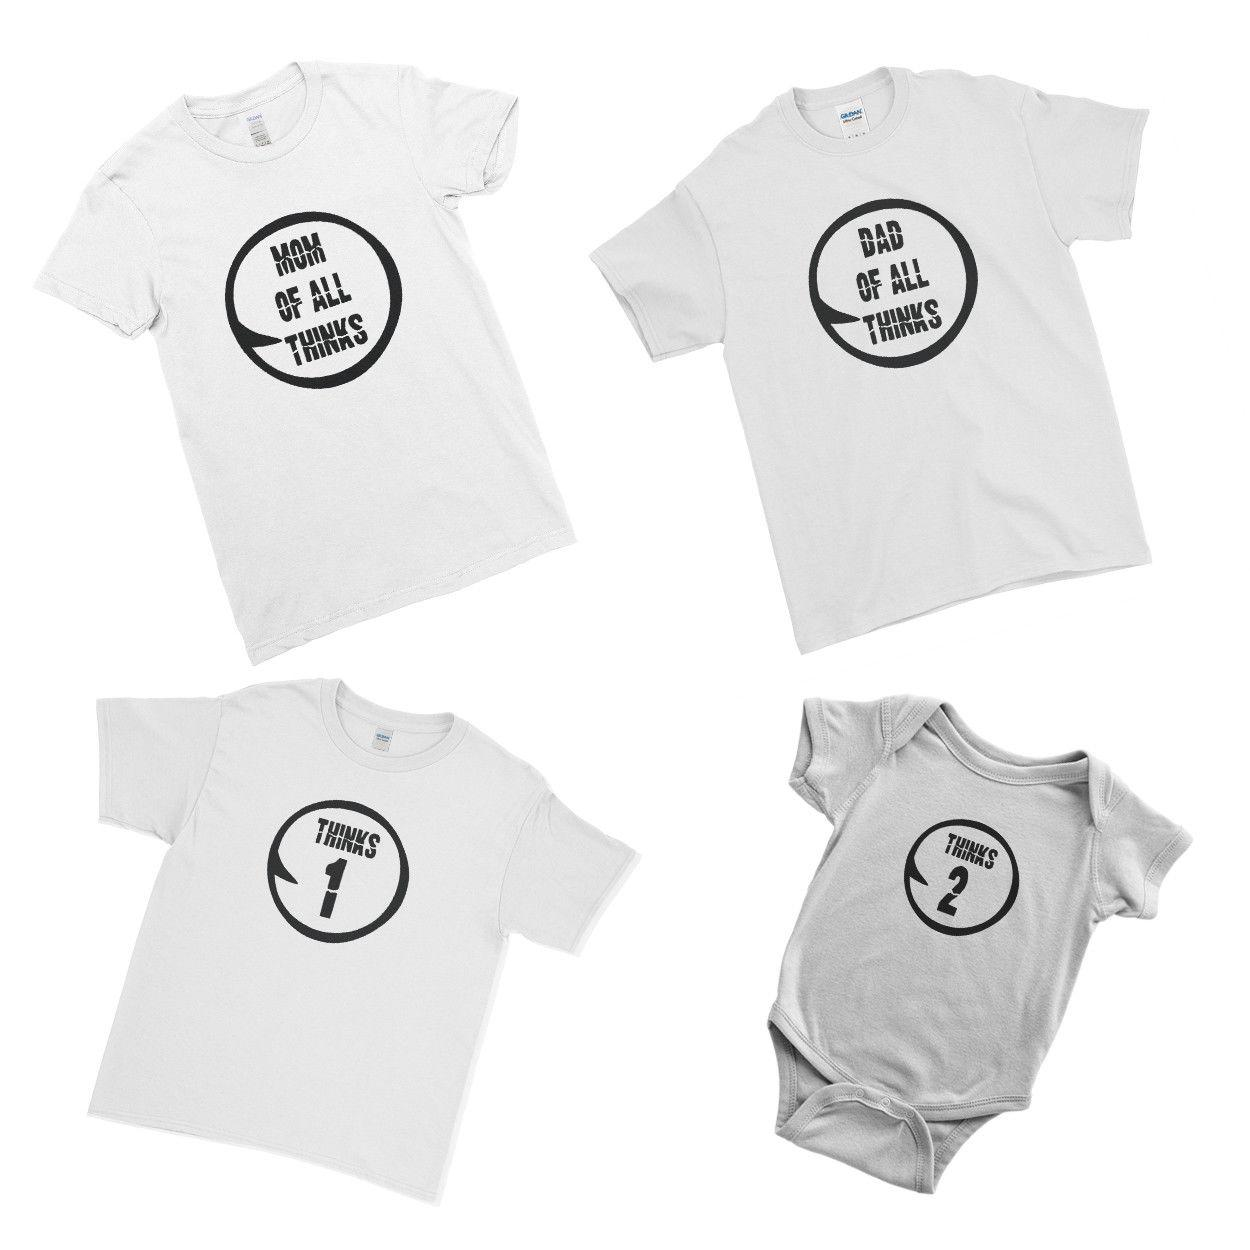 6a98f14a7 Family Of All Thinks Baby Dad Mom Family Matching Couple Team T Shirt T  Shirt Cool Casual Pride T Shirt Men Unisex New Fashion Cheap T Shirts For  Sale ...